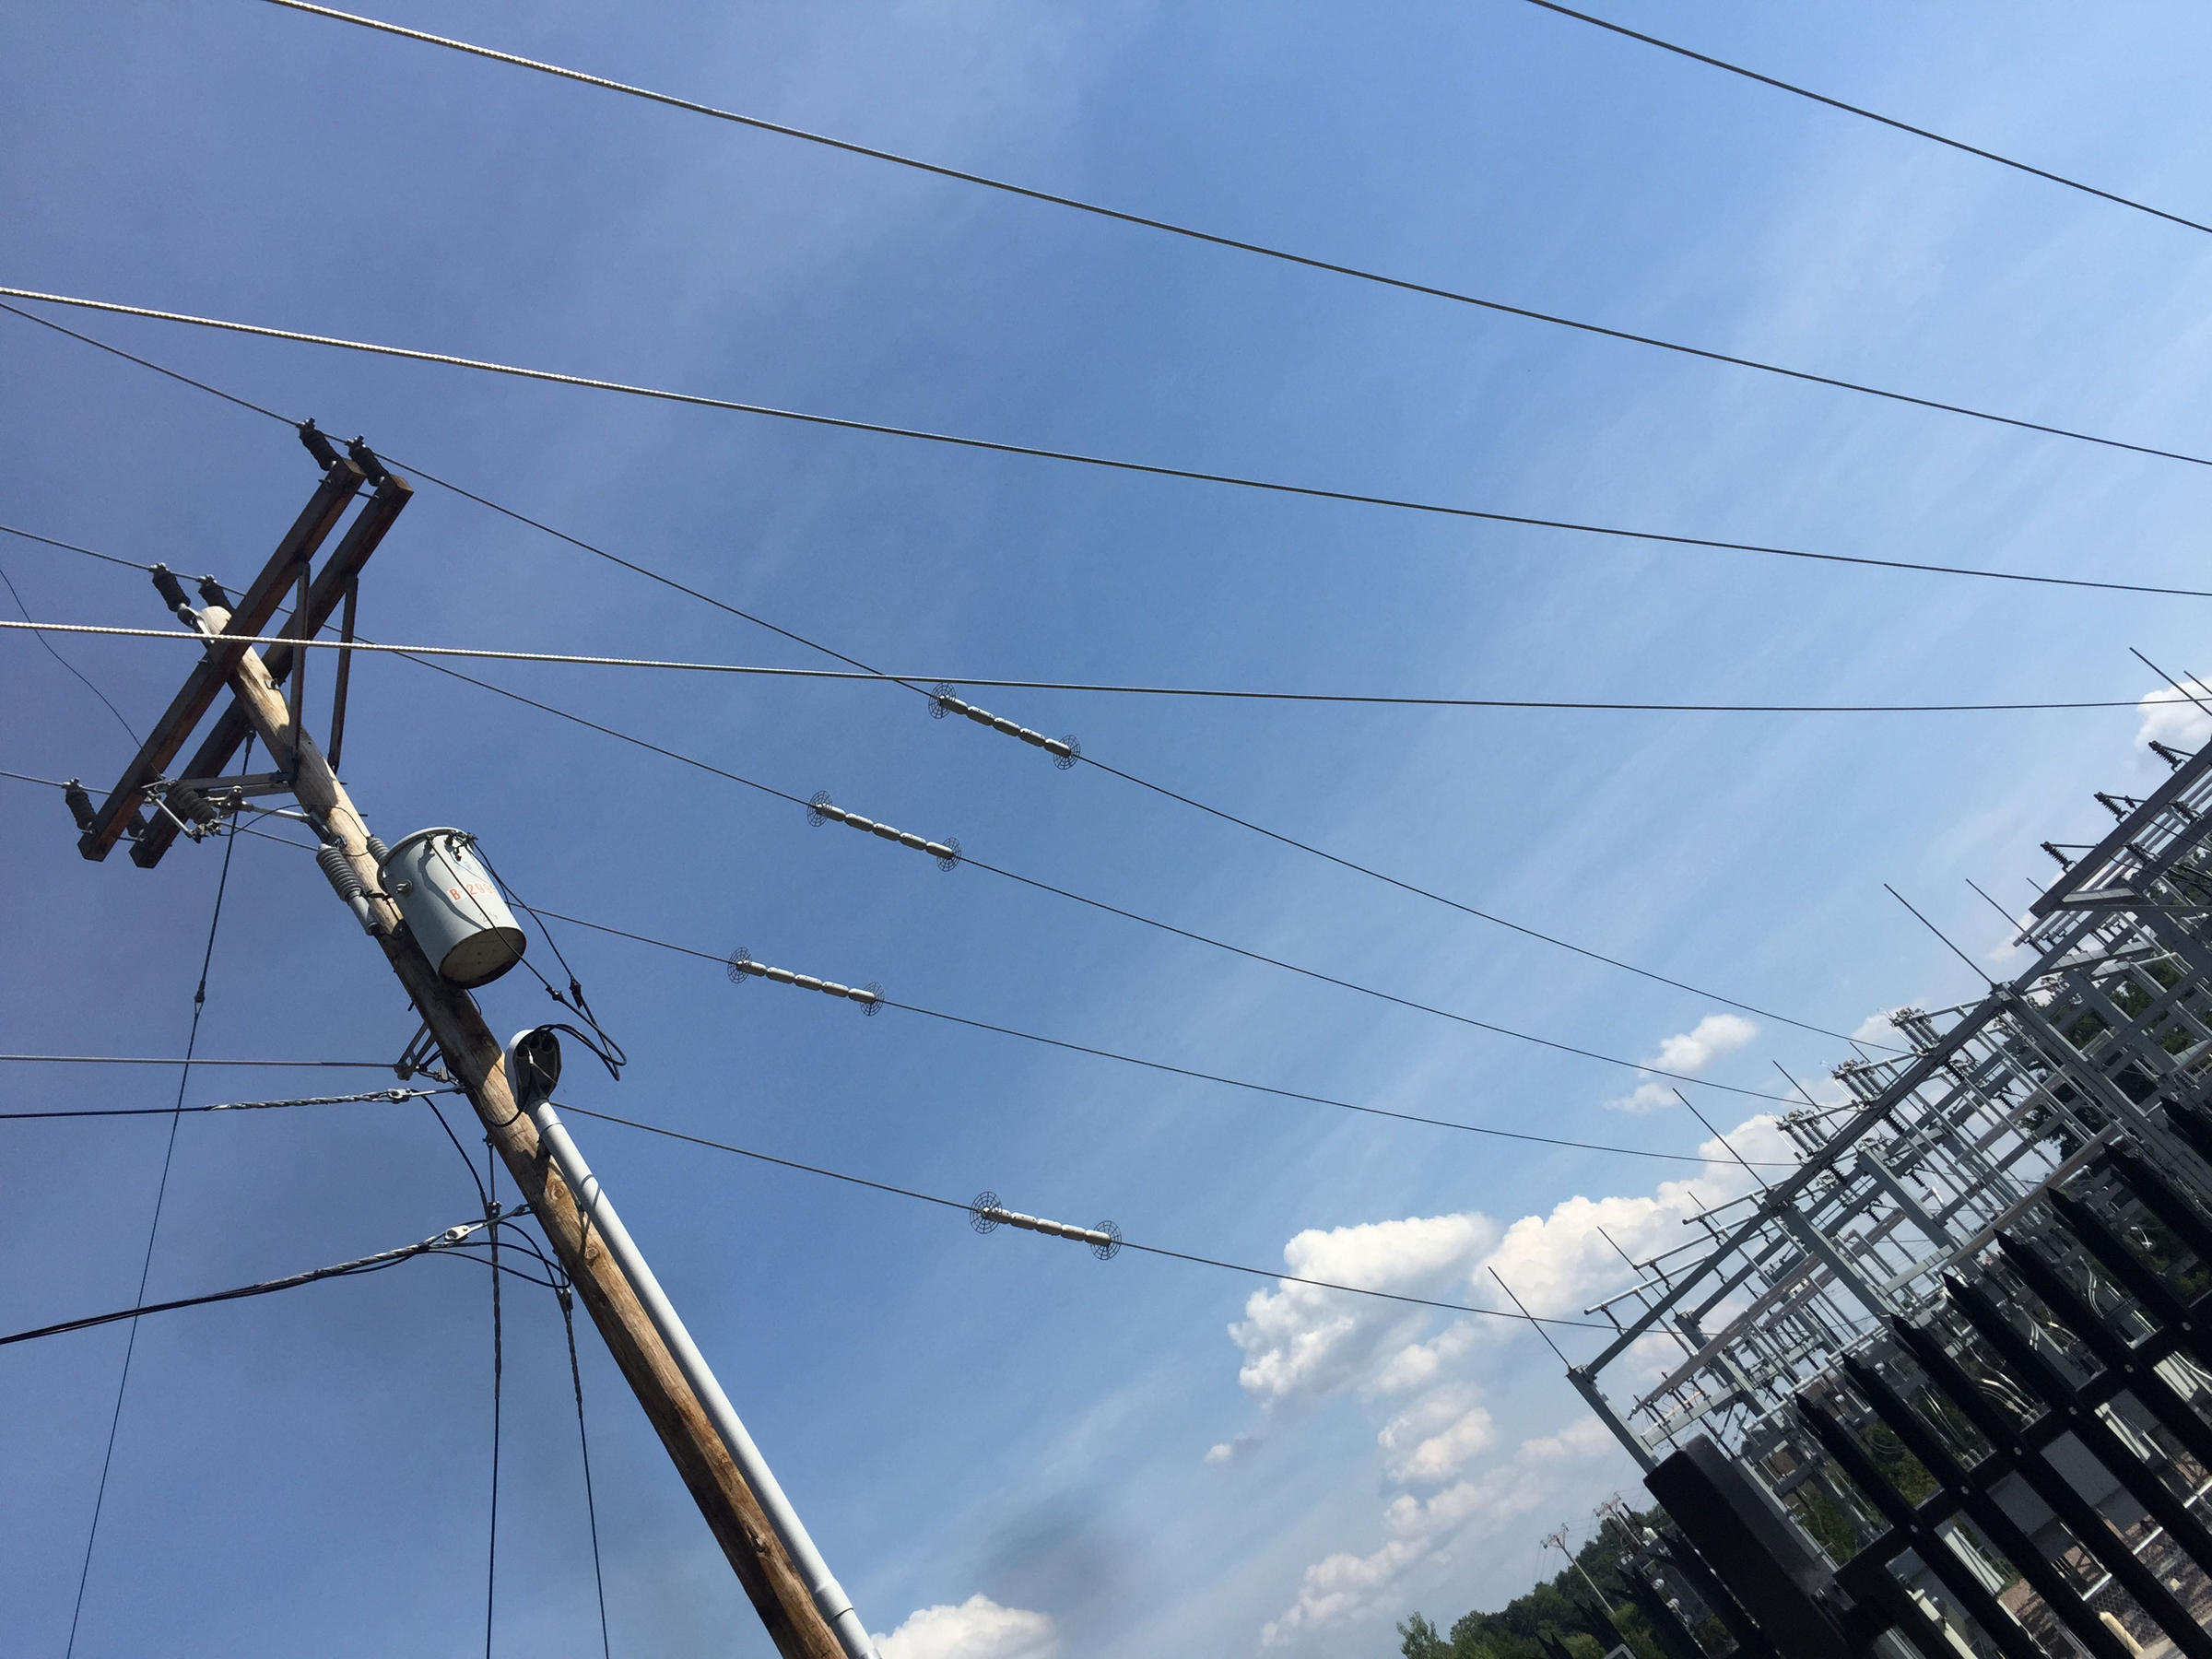 powerlines-vpr-masterson-20160819-no-logo